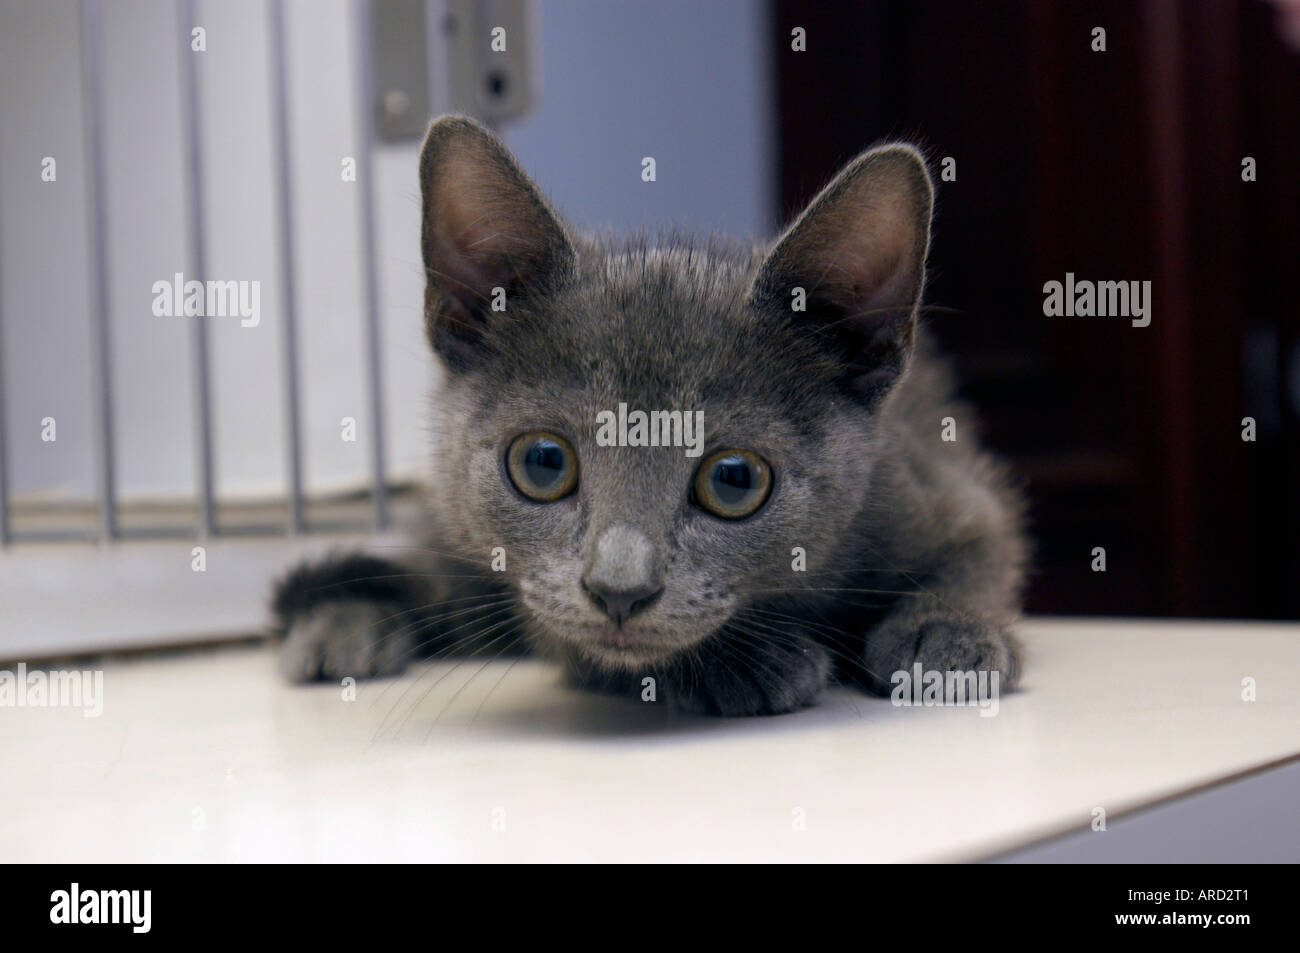 City Critters cat rescue organization rescued cats up for